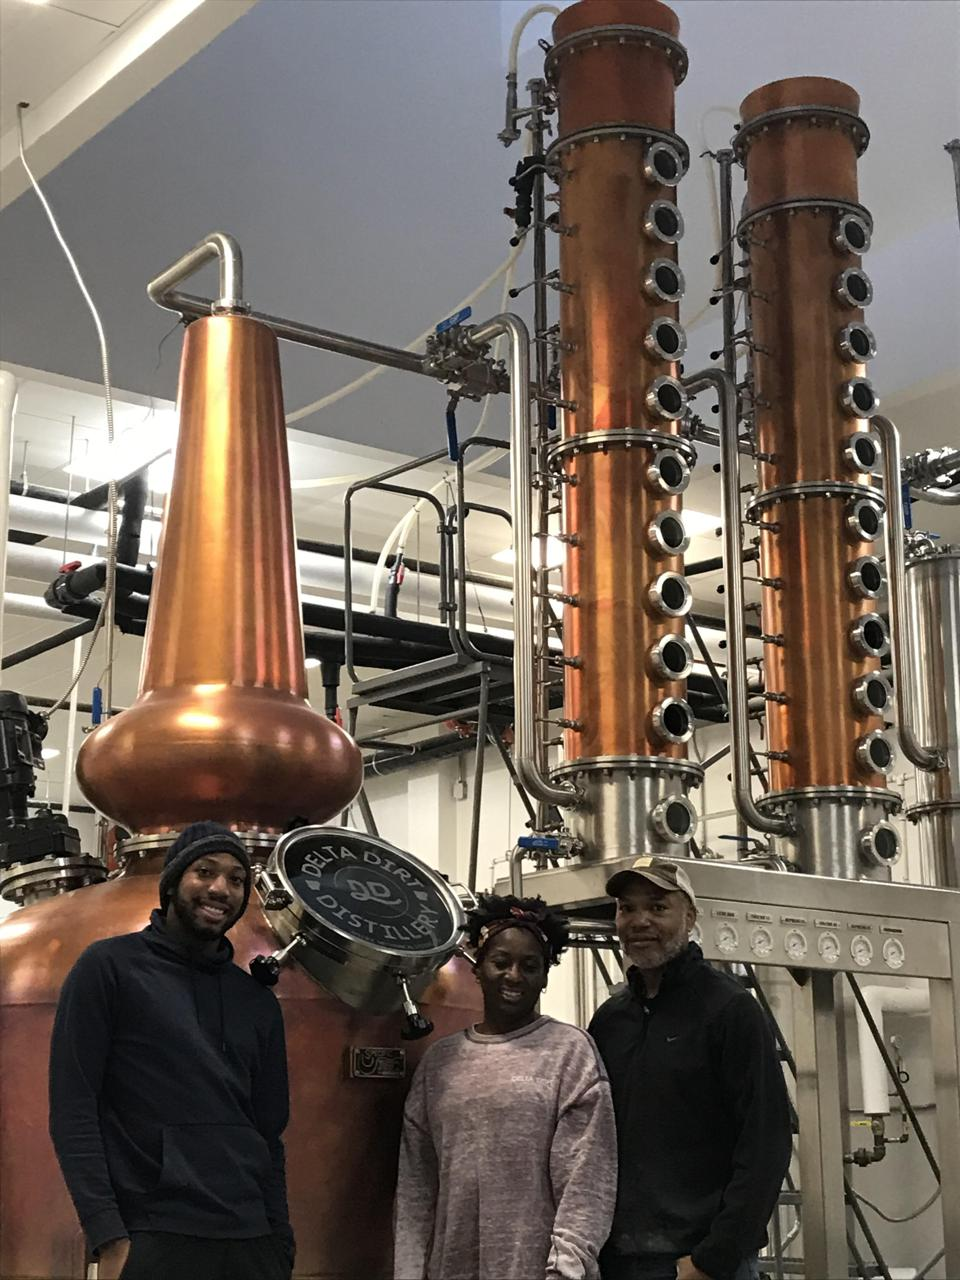 Three people standing in front of large columns of distilling equipment.